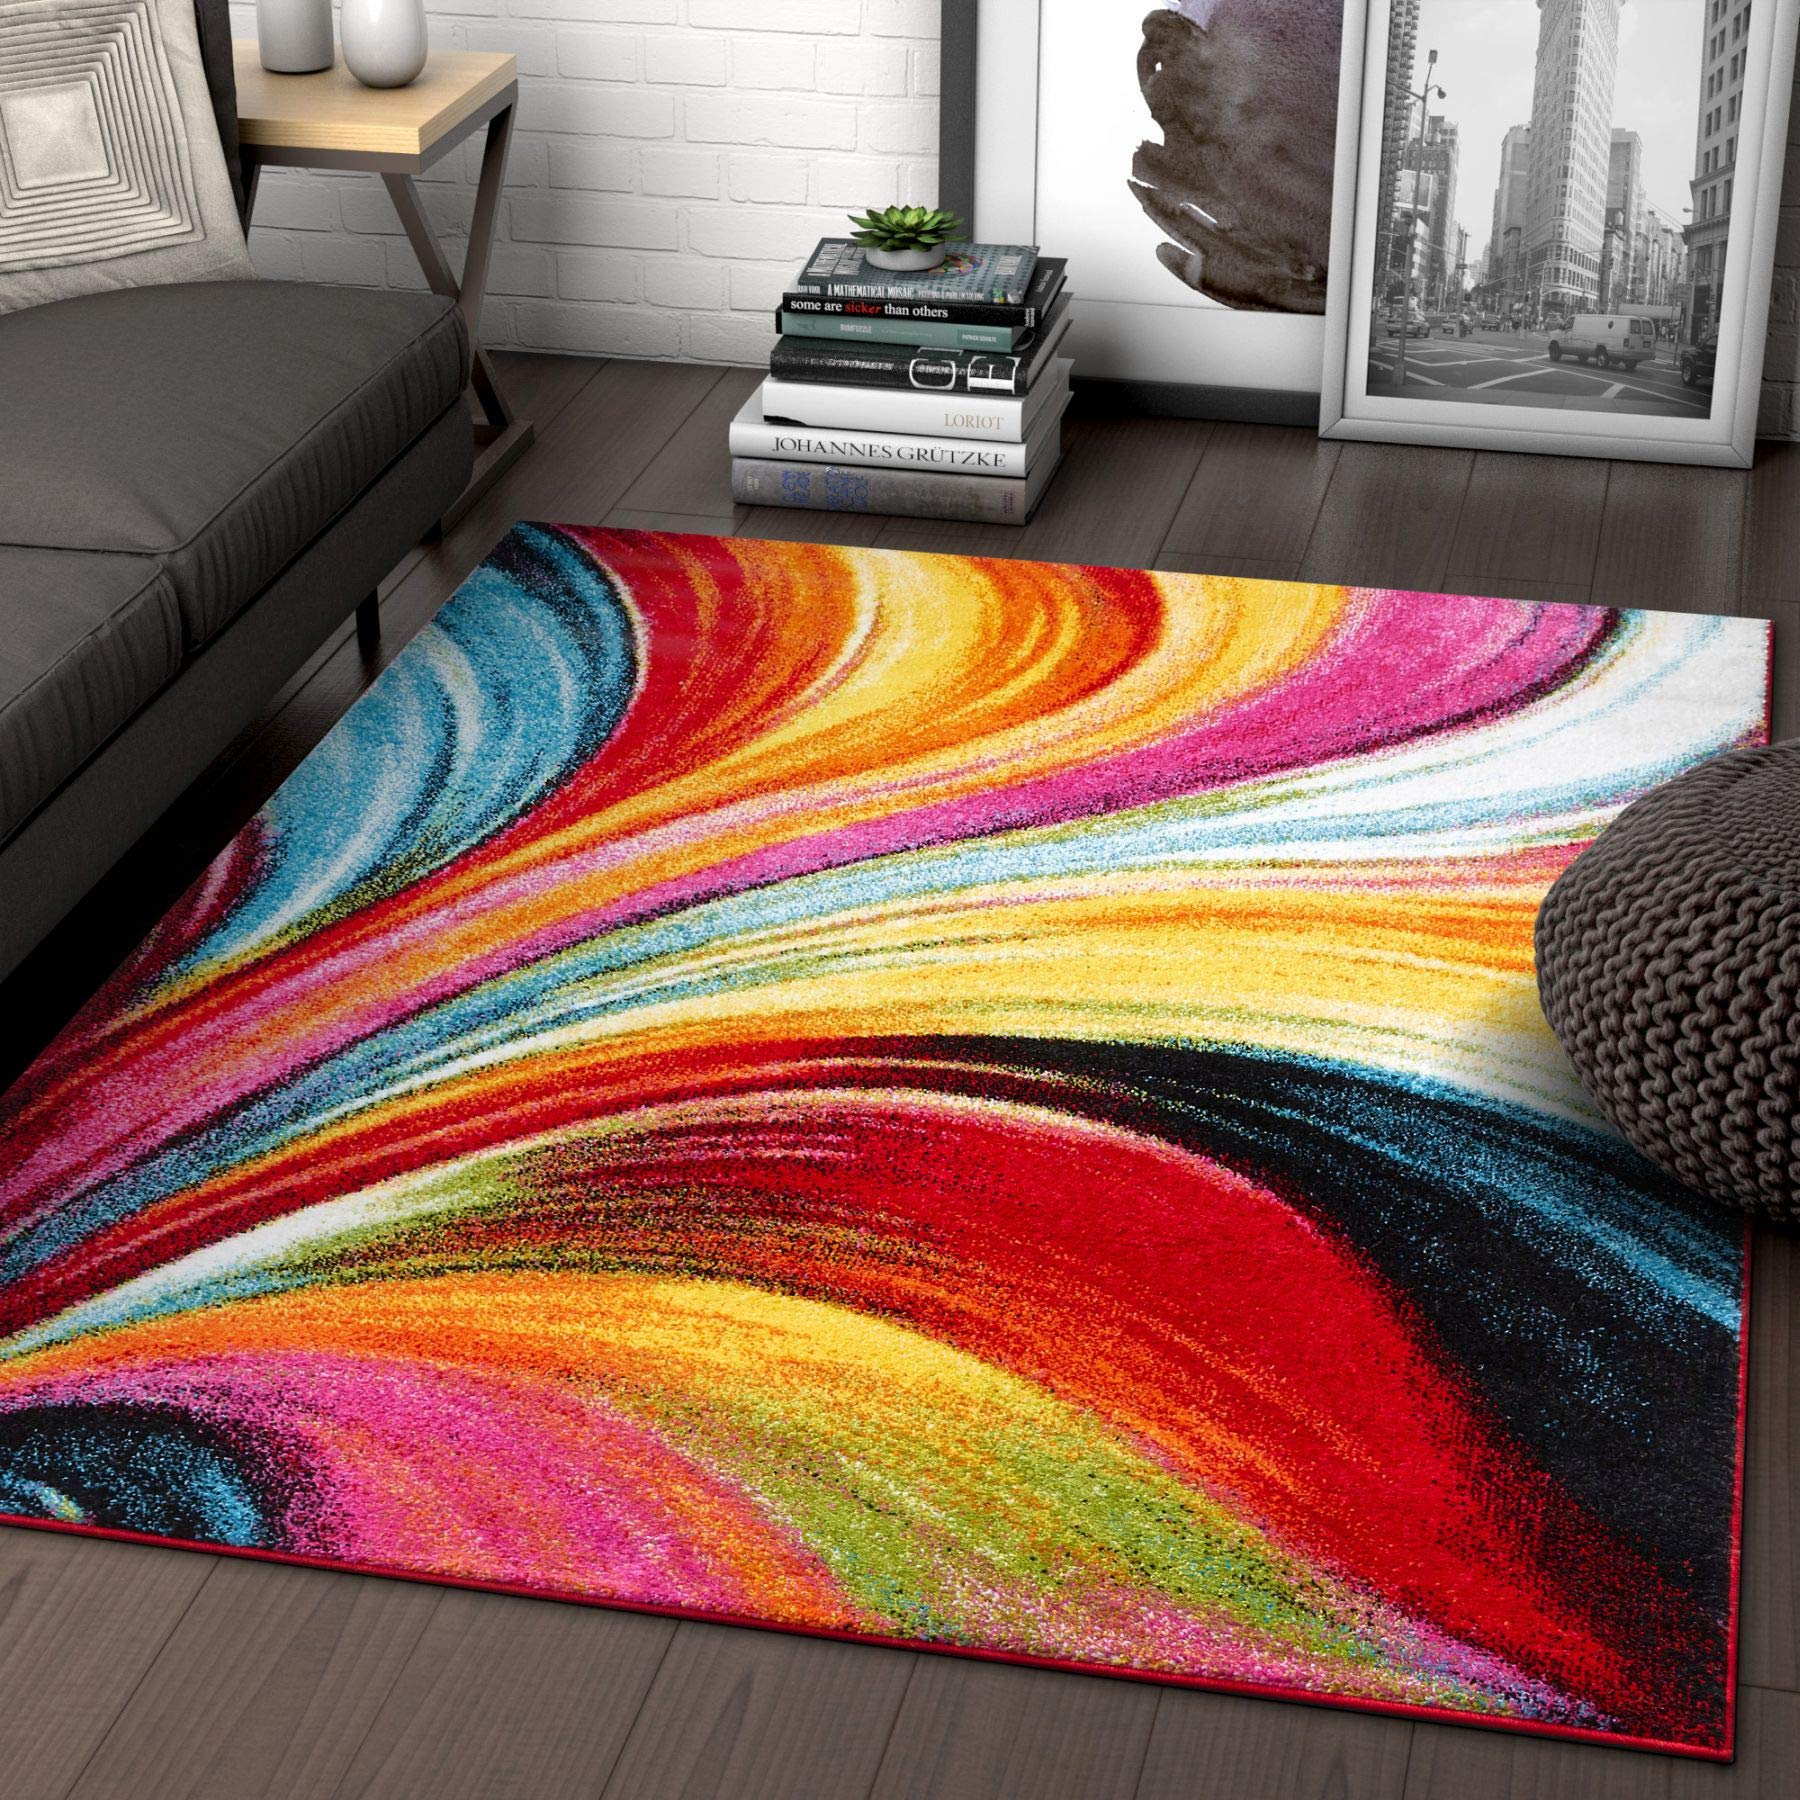 "Aurora Multi Red Yellow Orange Swirl Lines Modern Geometric Abstract Brush Stroke Area Rug 5 x 7 ( 5'3"" x 7'3"" ) Easy Clean Stain Resistant Shed Free Contemporary Painting Art Stripe Thick Soft Plush product image"